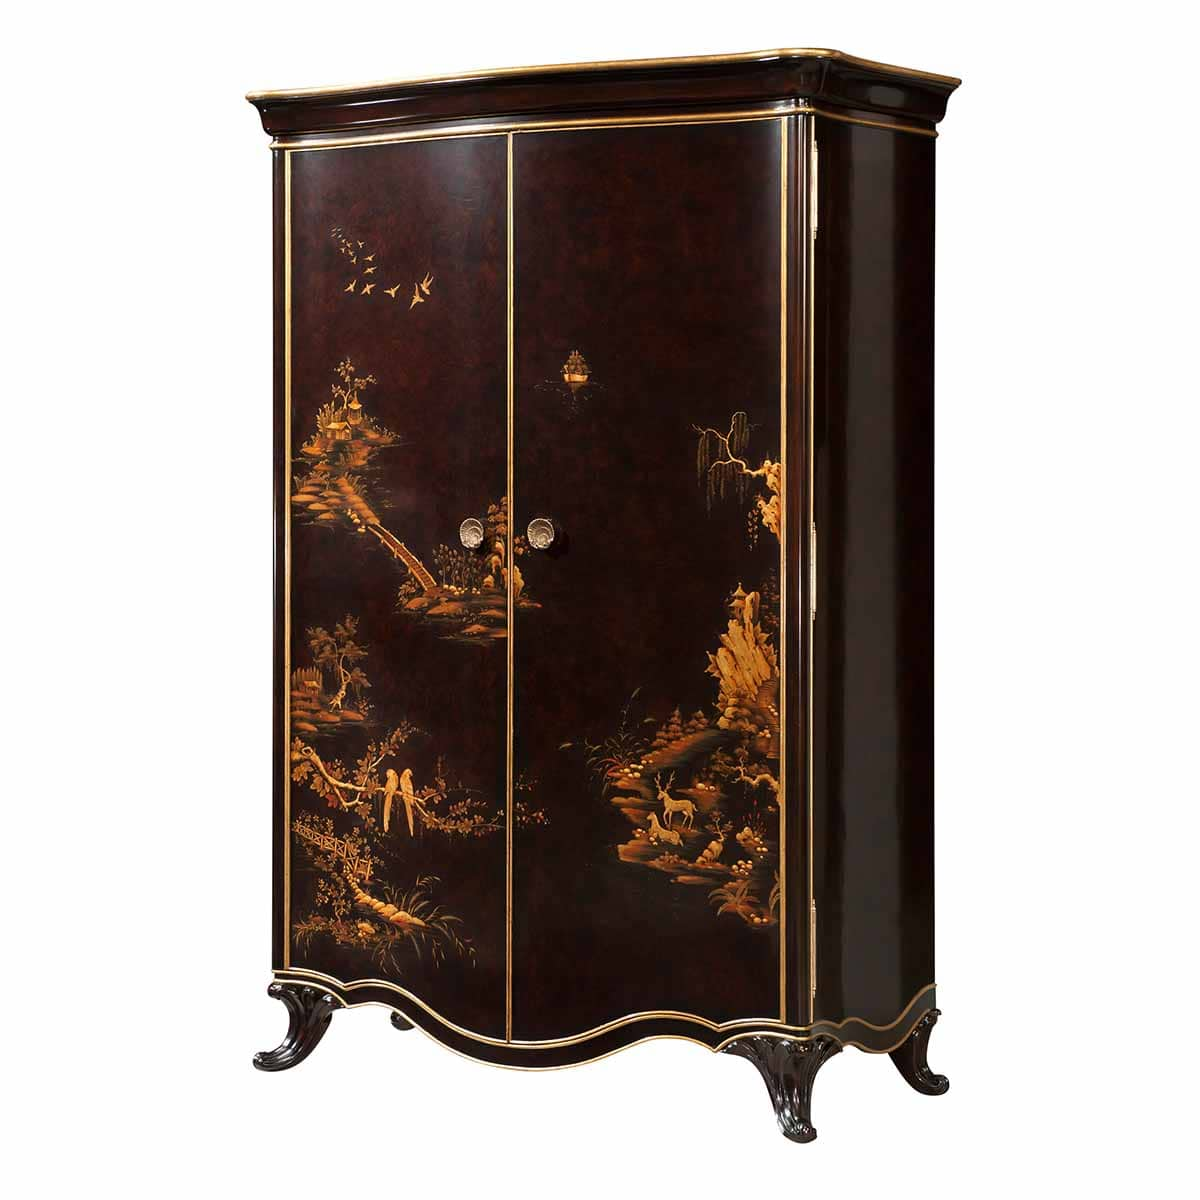 Chinoiserie Armoire Is Available From Place Direct Exclusive